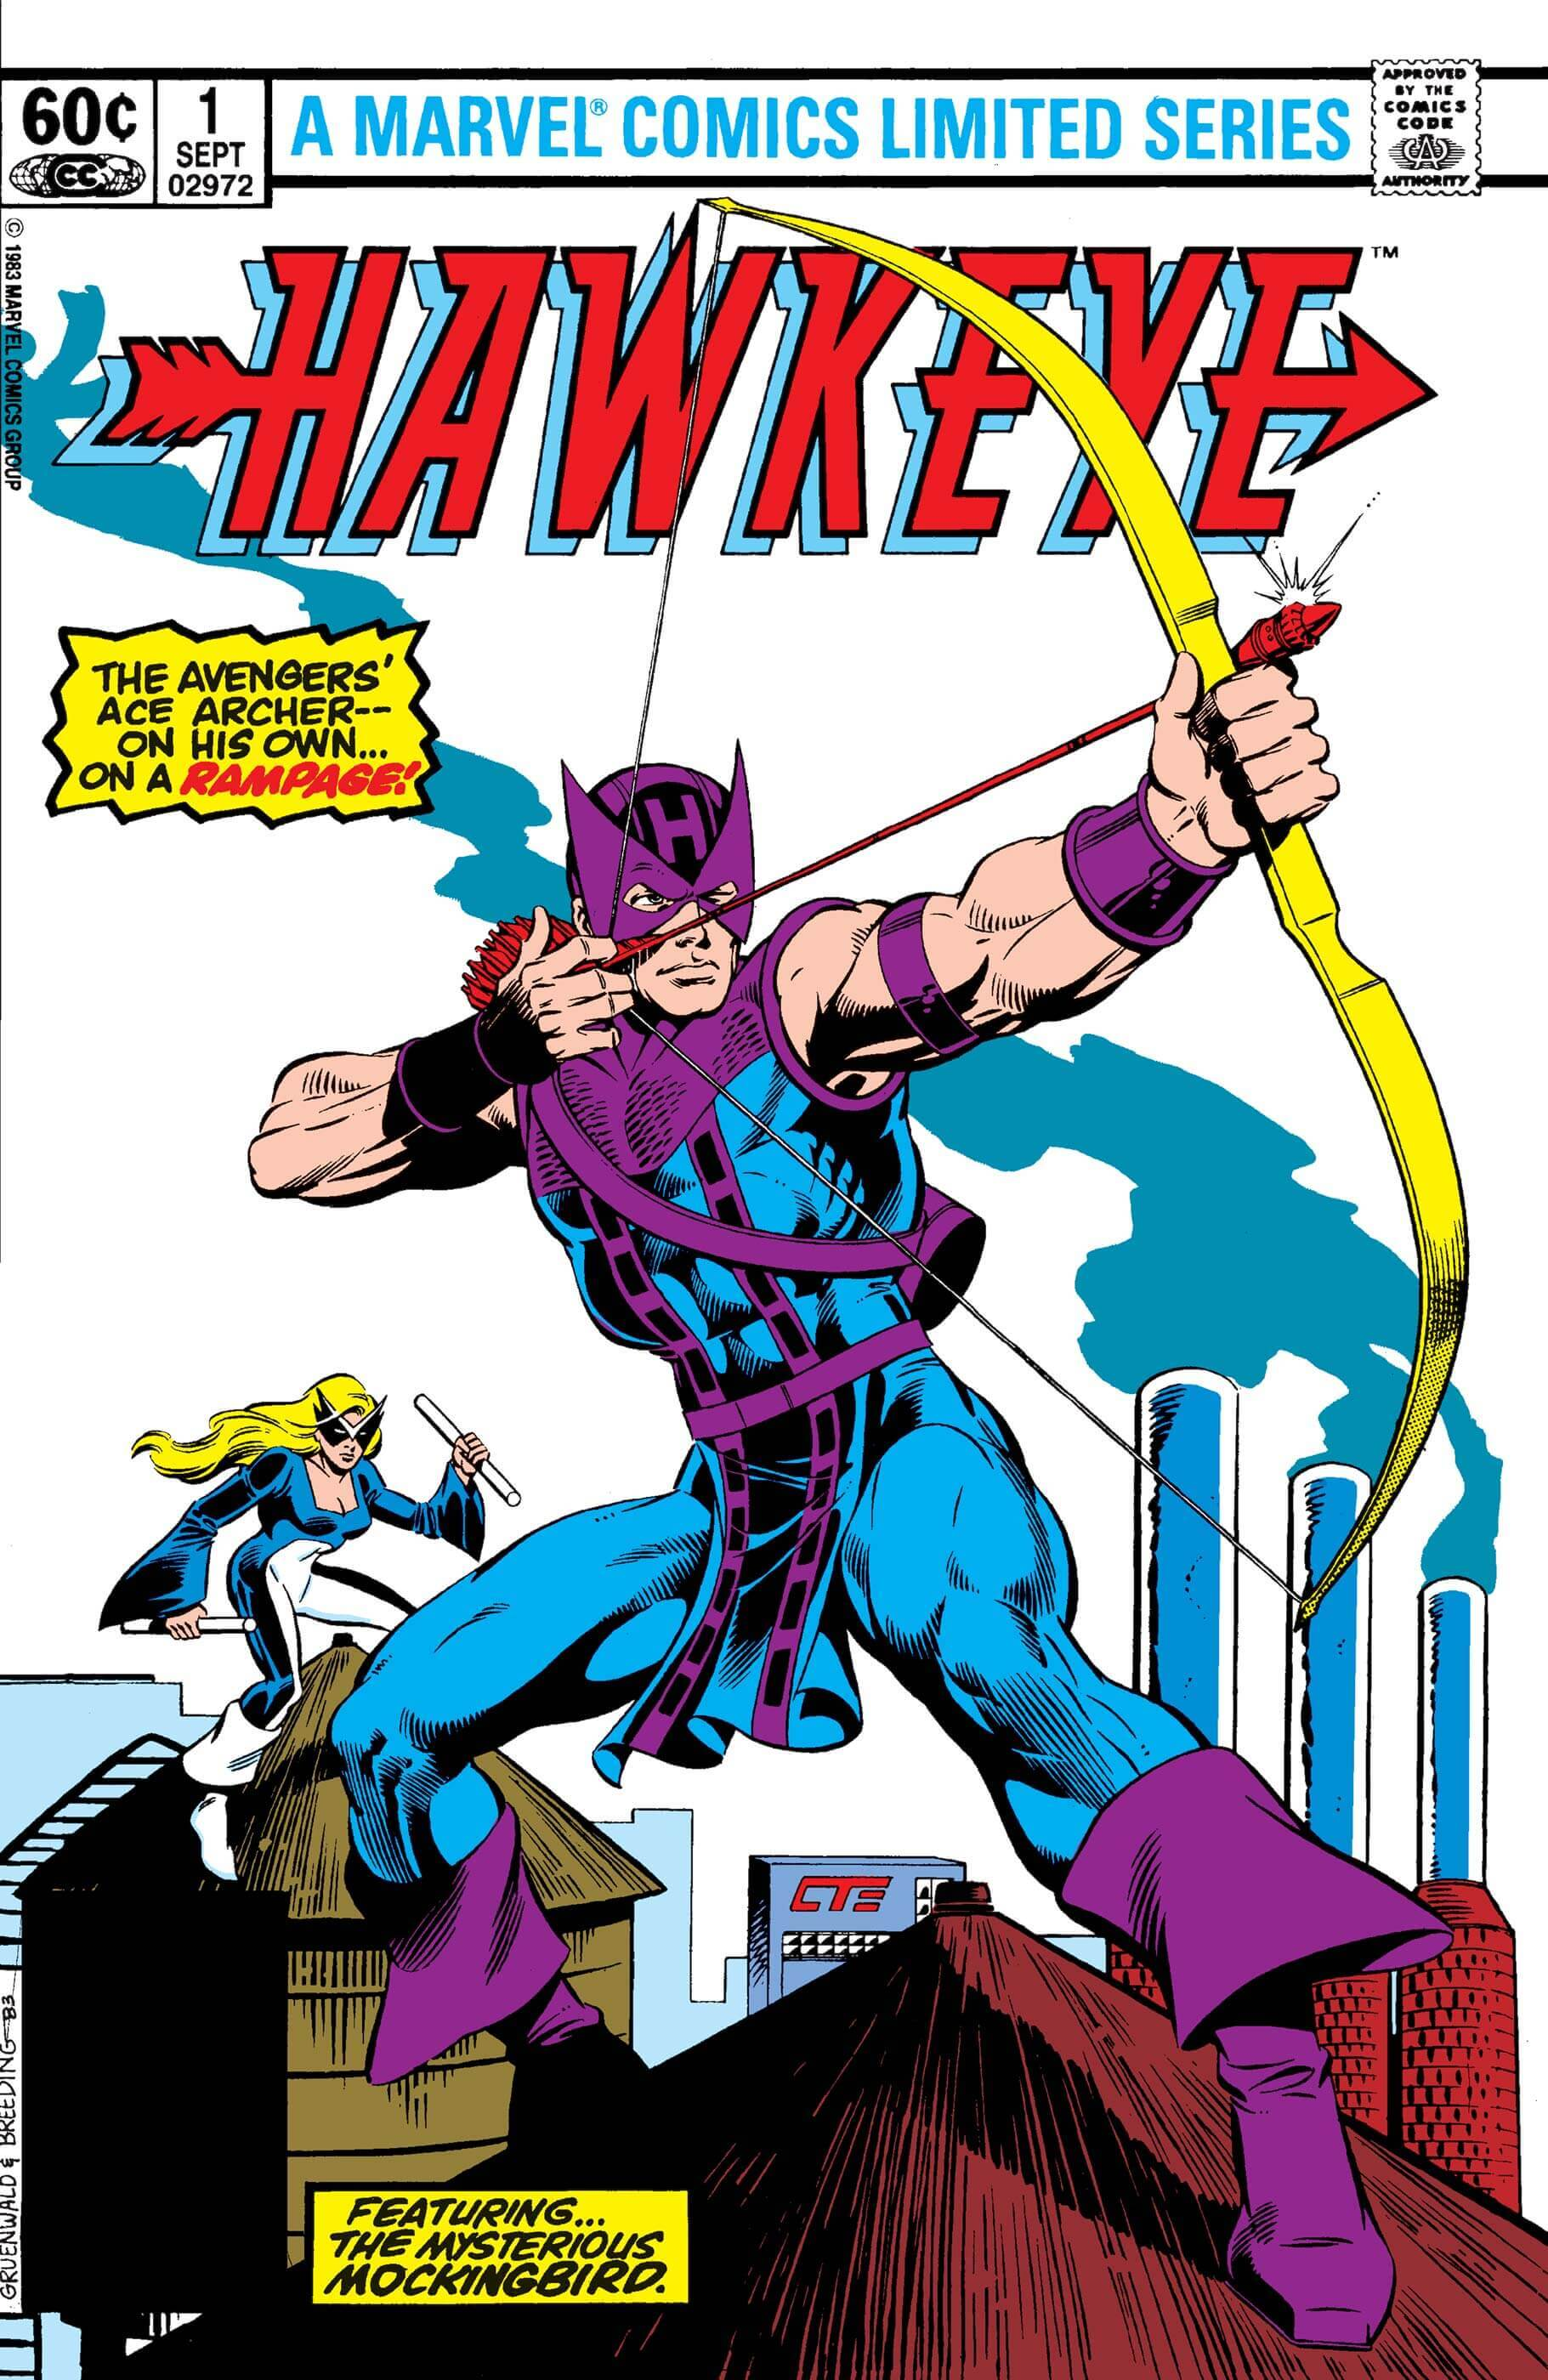 Hawkeye - Famous and Most Popular Superhero